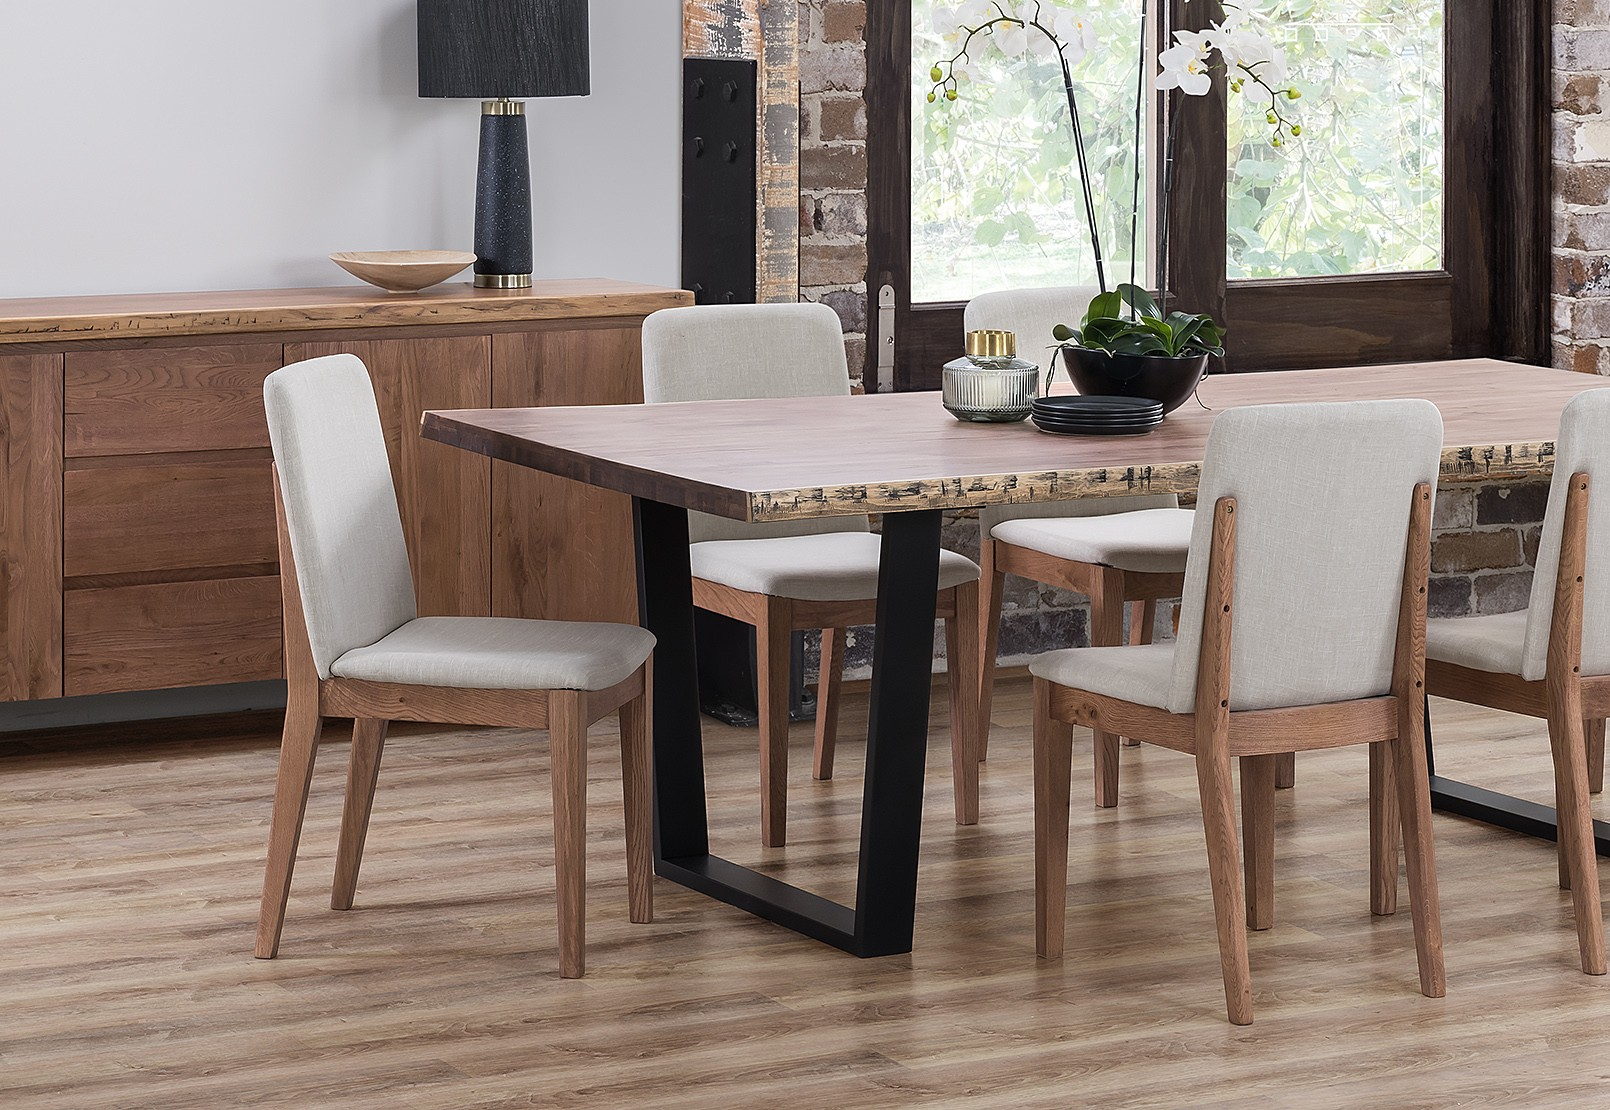 Dining Tables | Glass, Square, Wooden | Amart Furniture Inside 2017 North Reading 5 Piece Dining Table Sets (View 11 of 20)